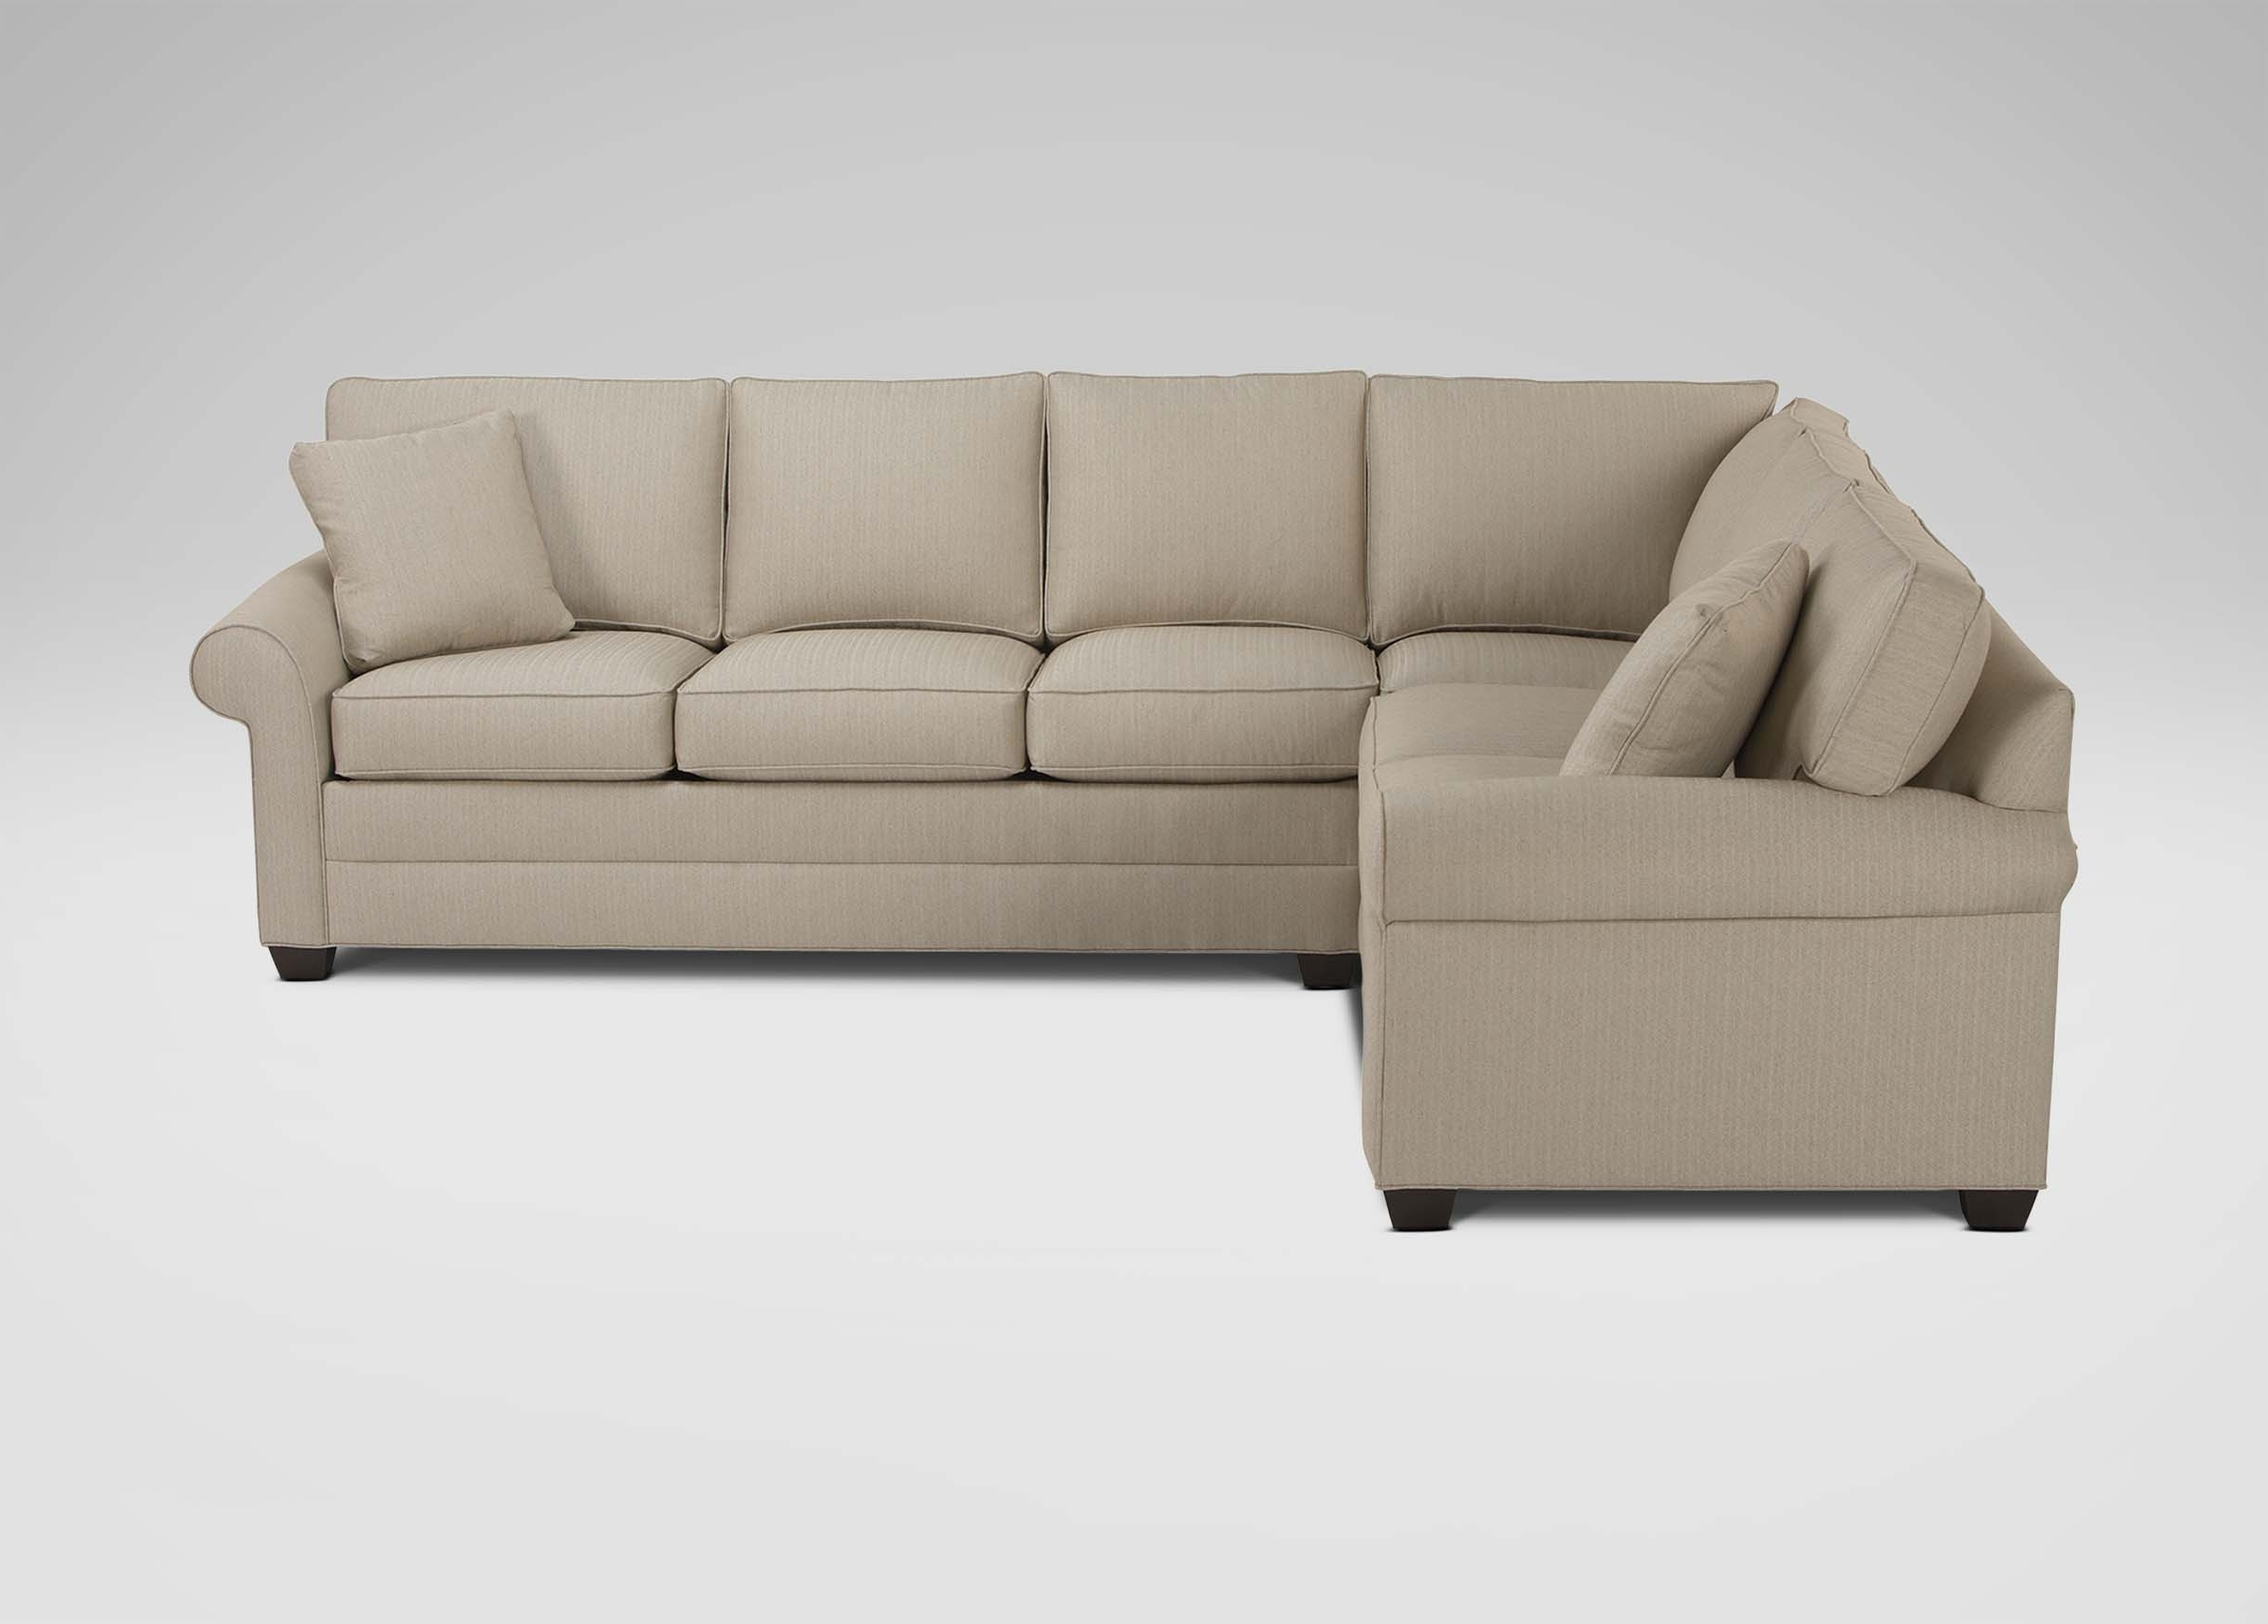 Ethan Allen Chaises With Well Known Ethan Allen Sectional Sofas Contemporary Bennett Roll Arm (View 6 of 15)